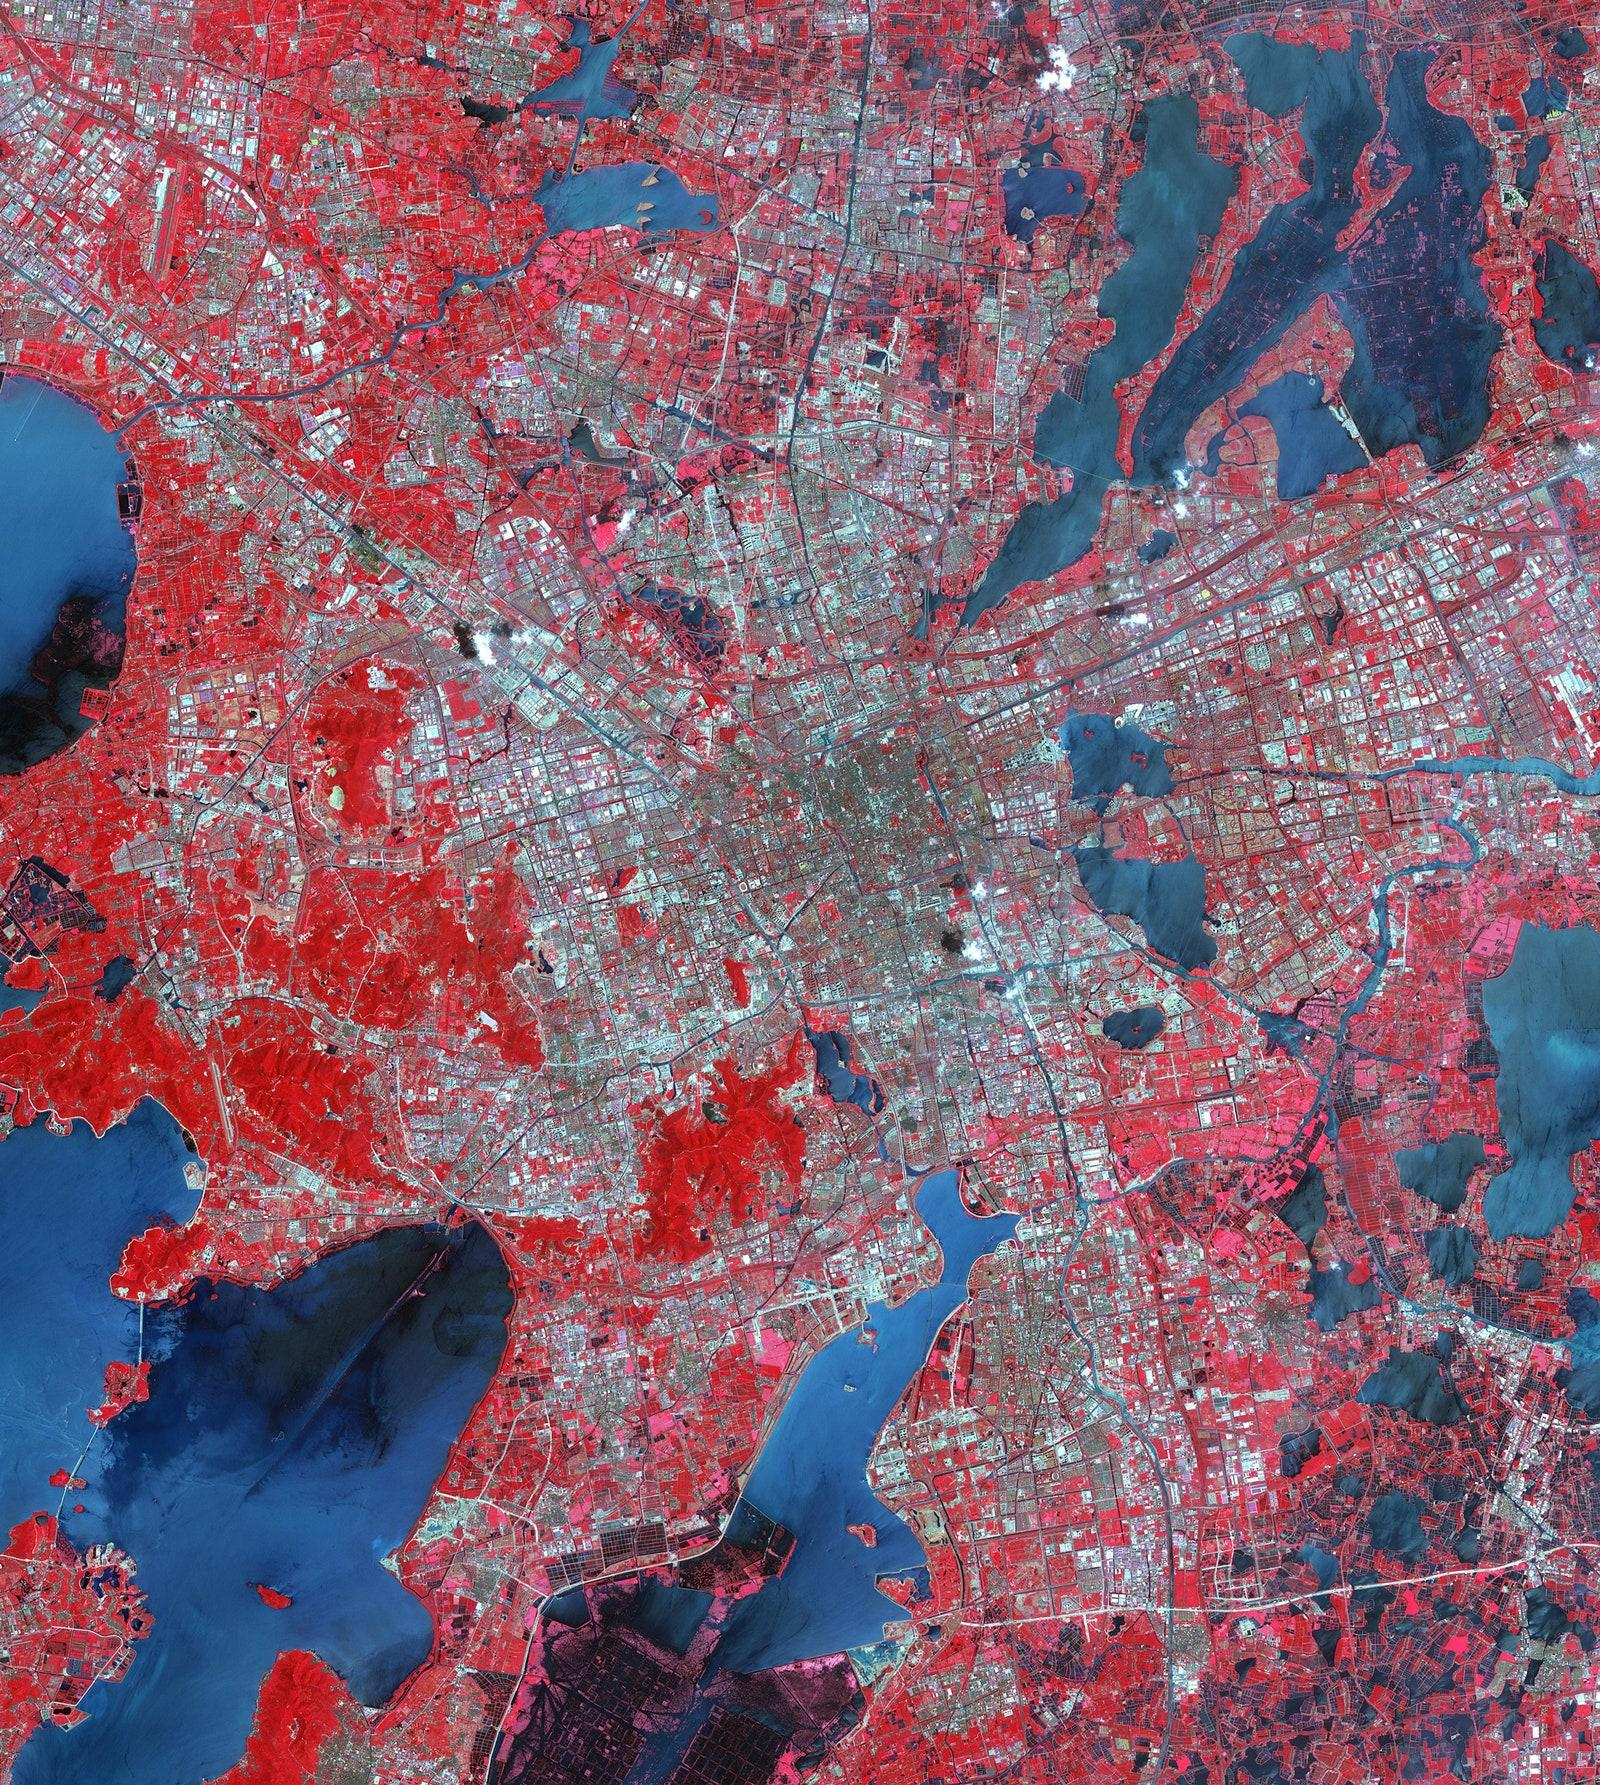 Satellite image of Suzhou, East China—one of their largest cities and main economic center along the Yangtze river via NASA:METI:AIST